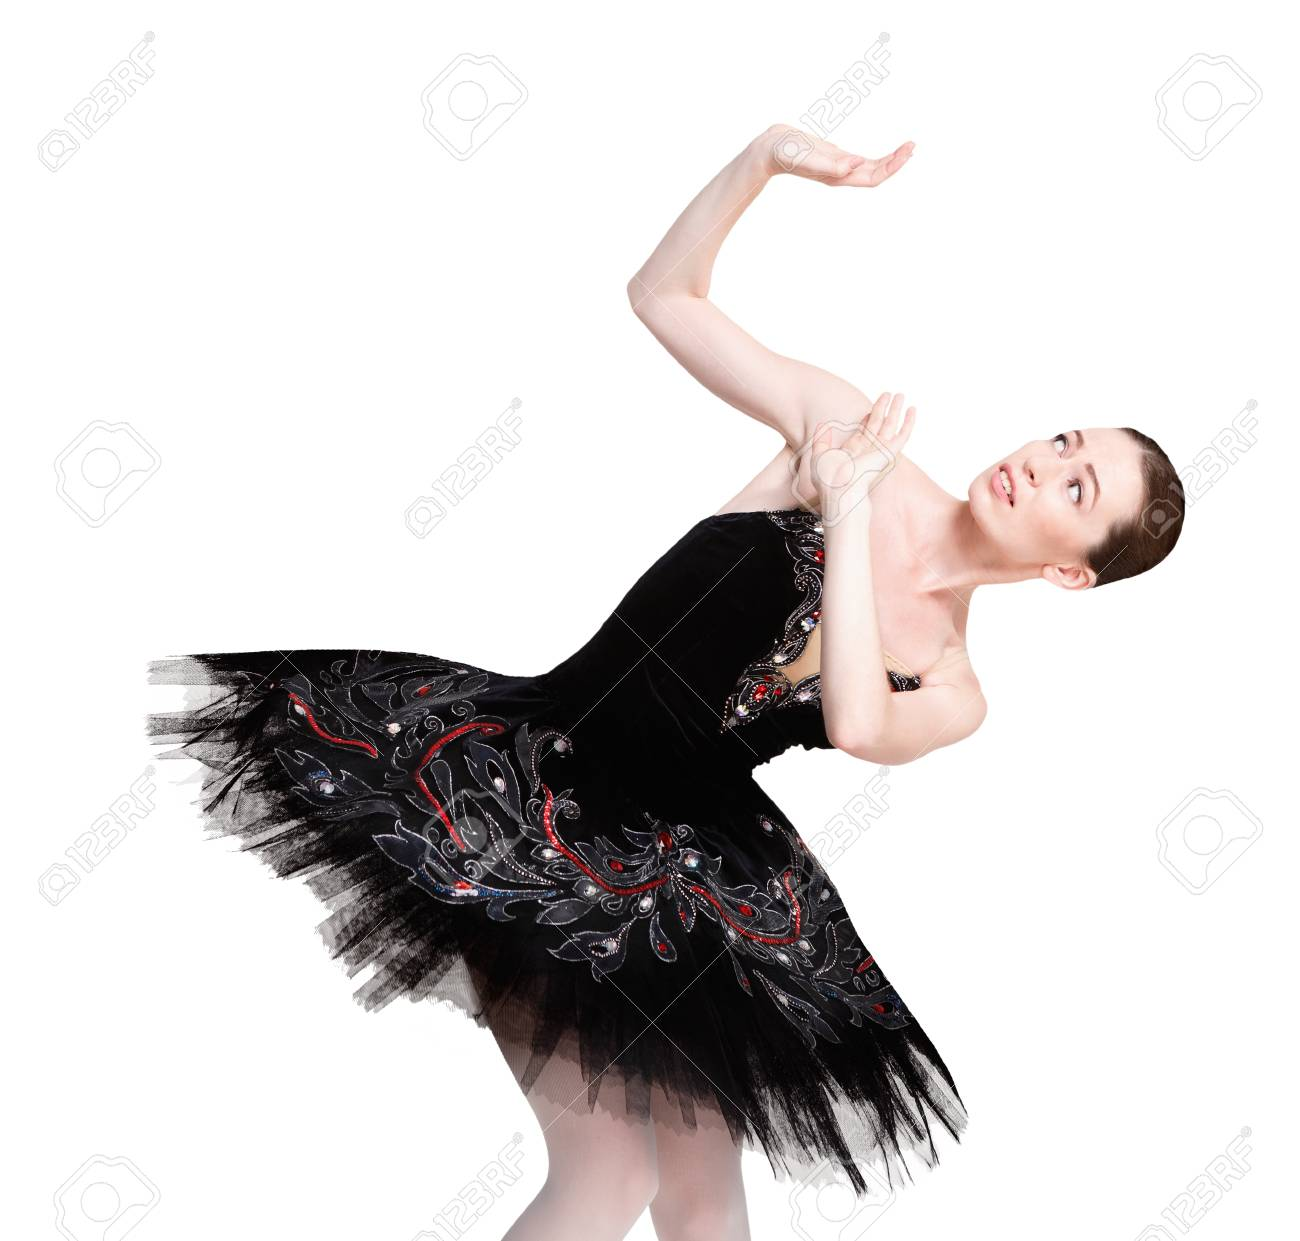 4a55782a088 Scared Ballerina In Black Swan Dress Against White Background